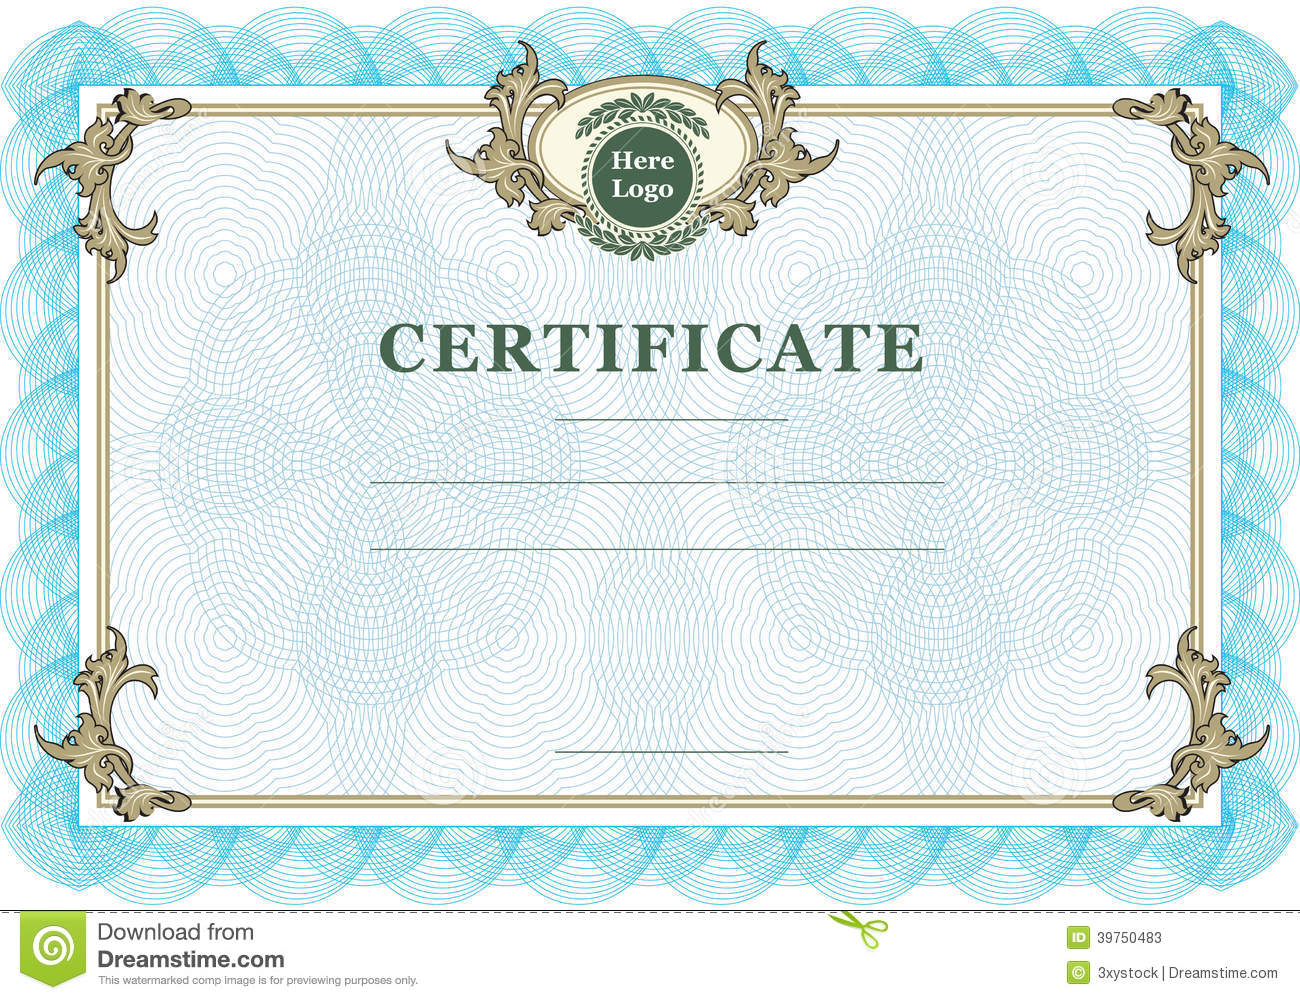 Vintage certificate stock vector. Illustration of ...